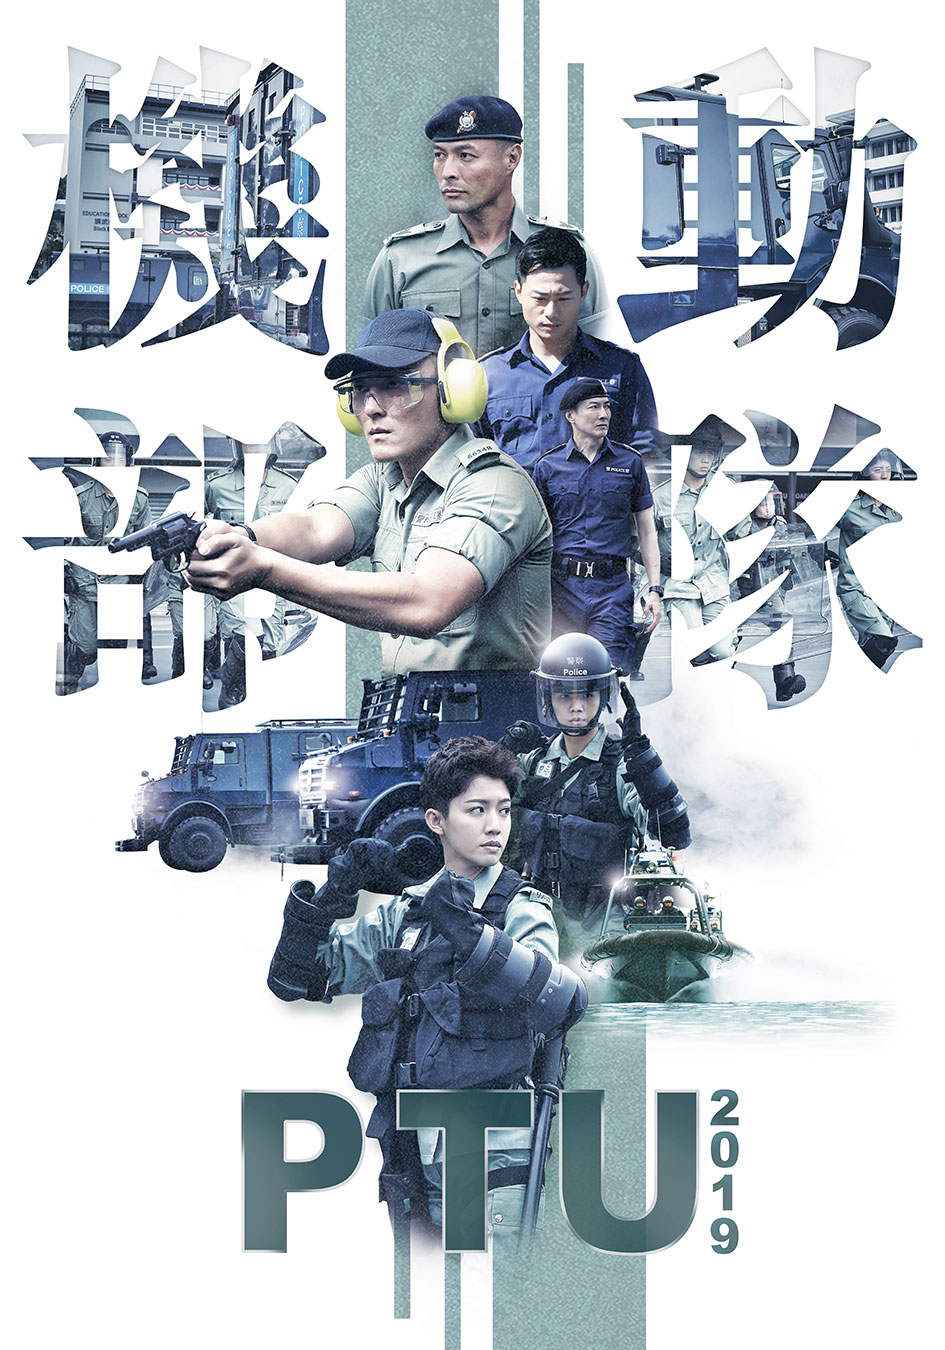 機動部隊2019-Police Tactical Unit 2019